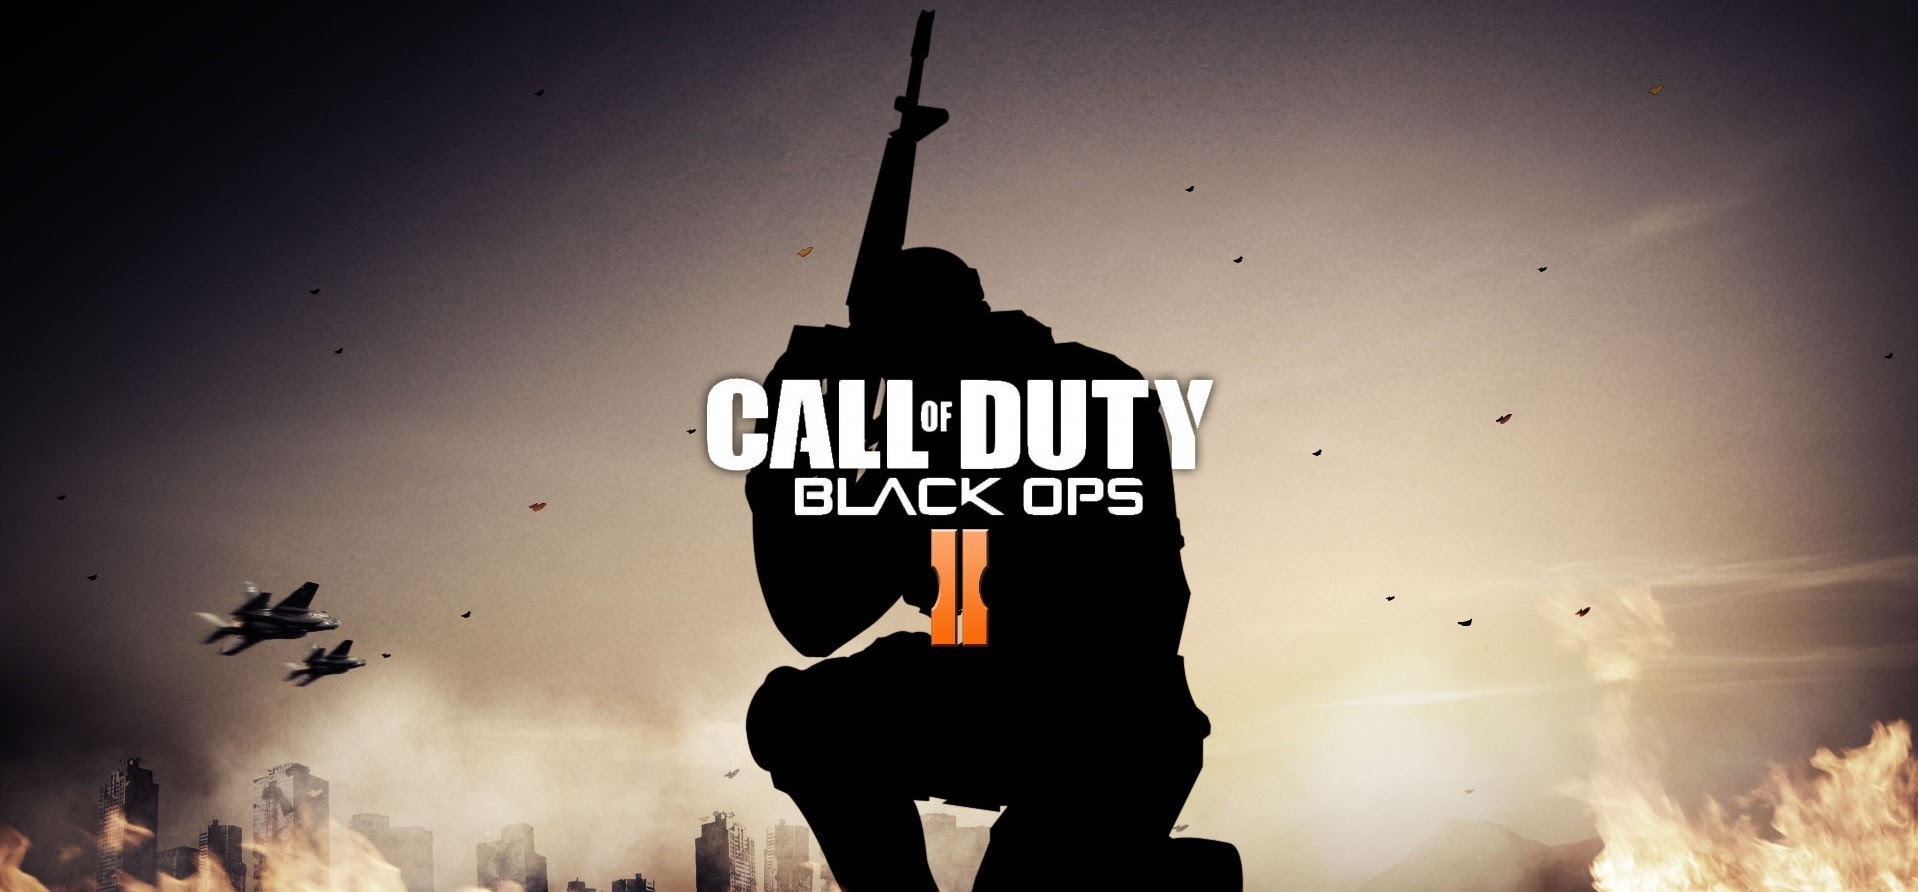 Call Of Duty Black Ops 2 Wallpaper 27